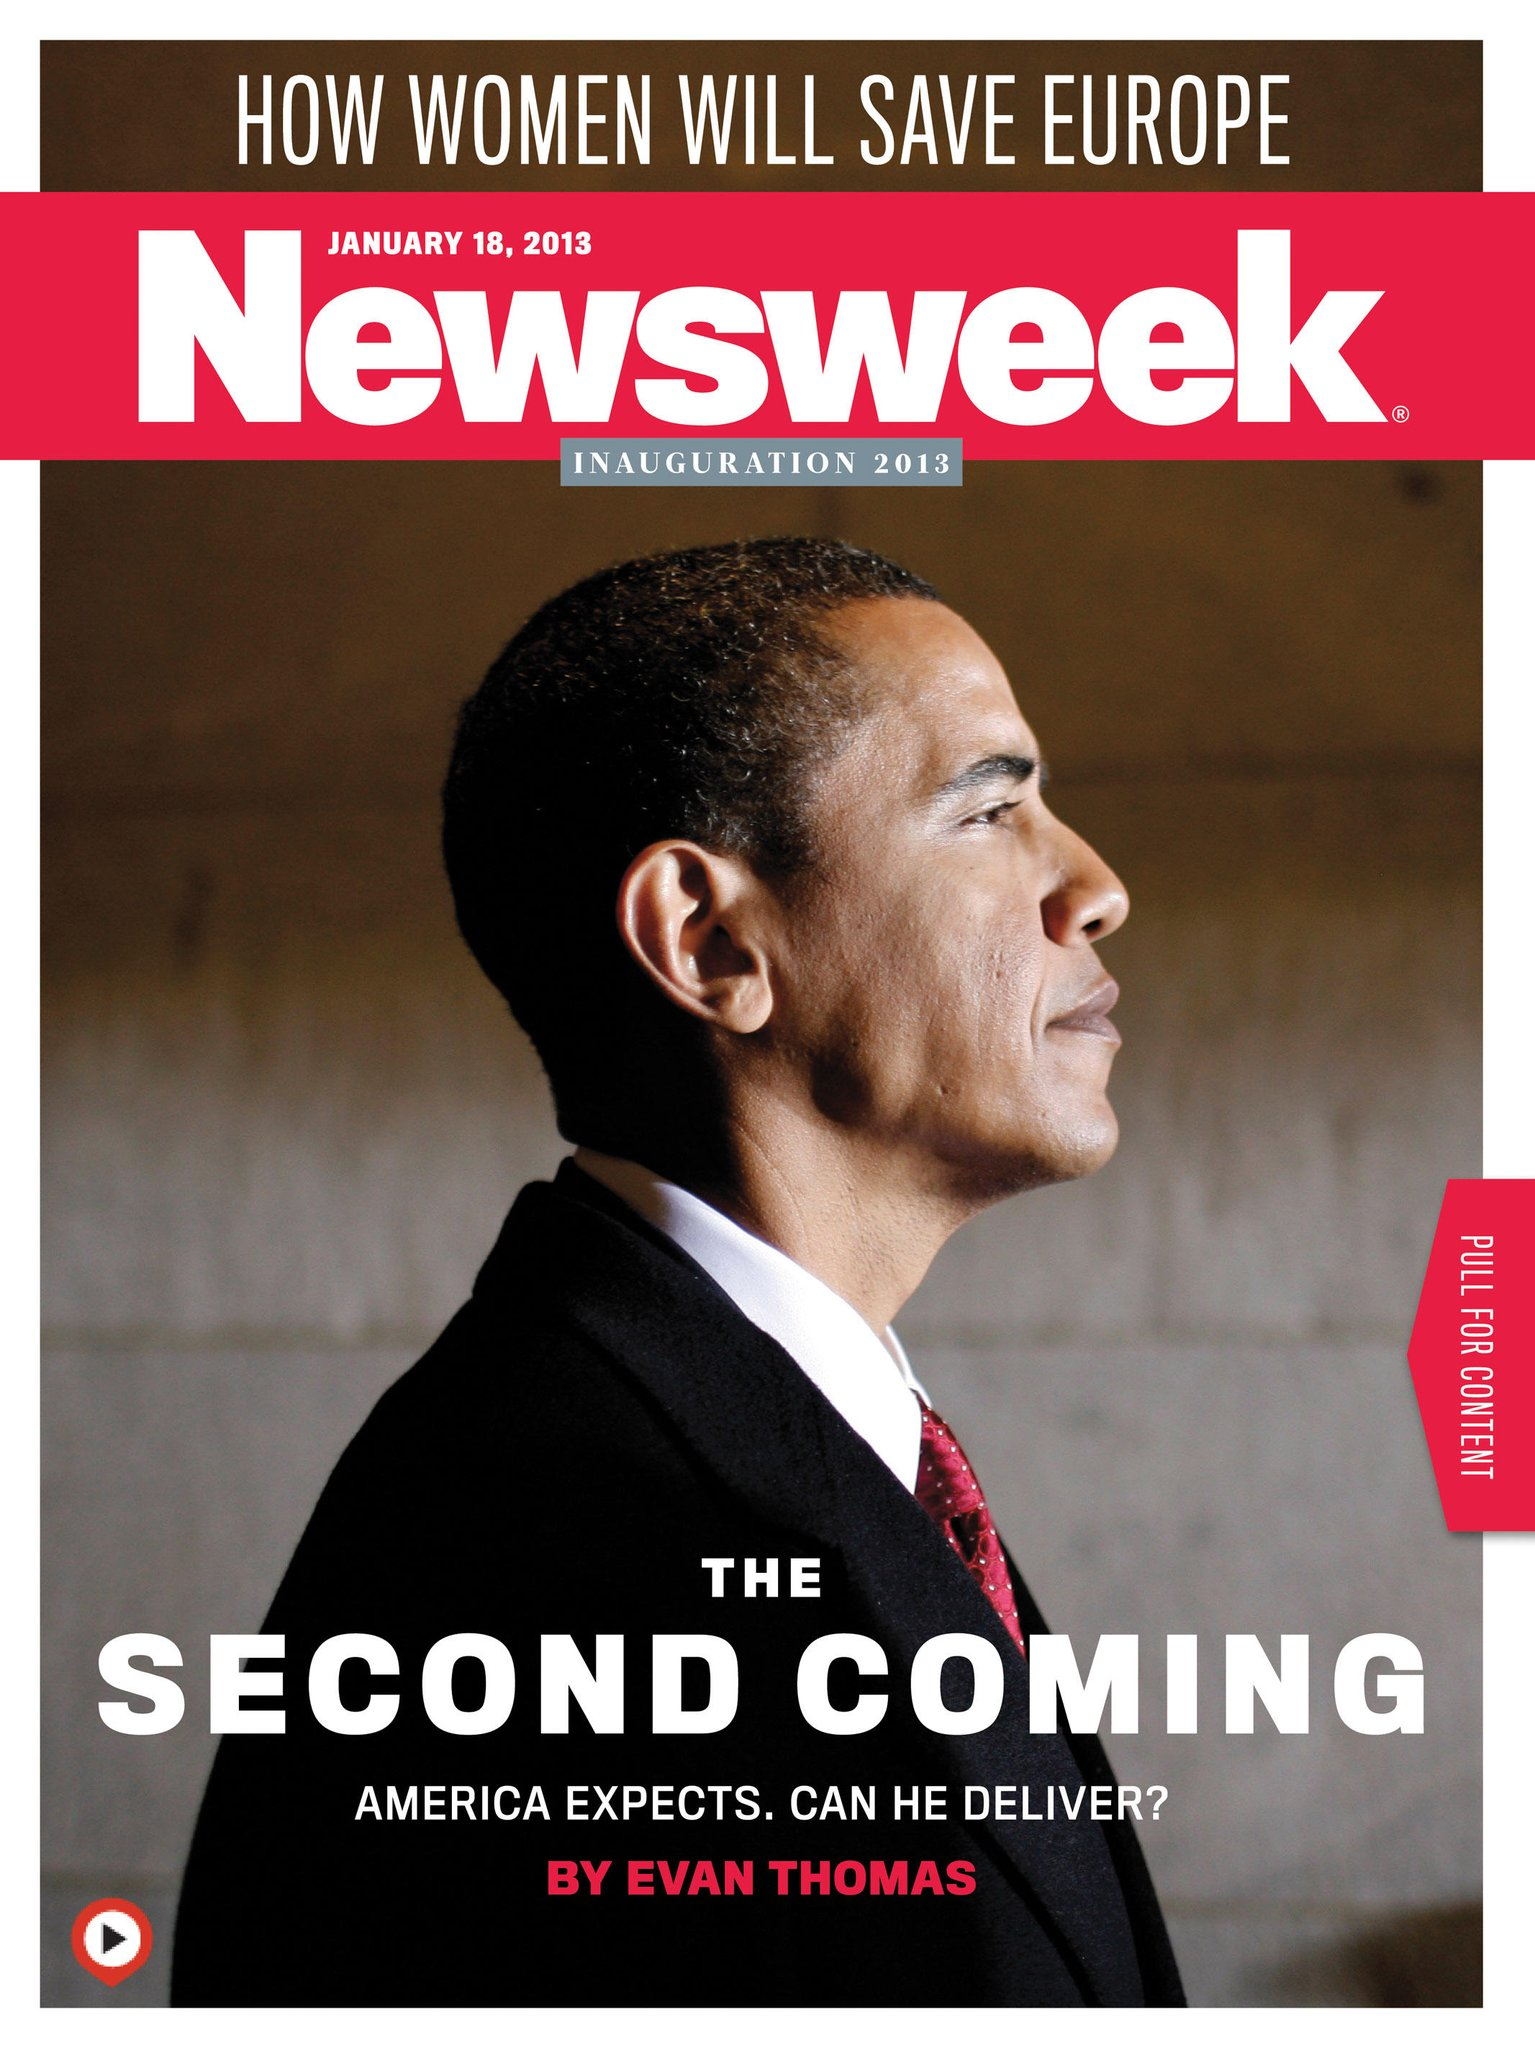 my turn newsweek essay 91 121 113 106 my turn newsweek essay